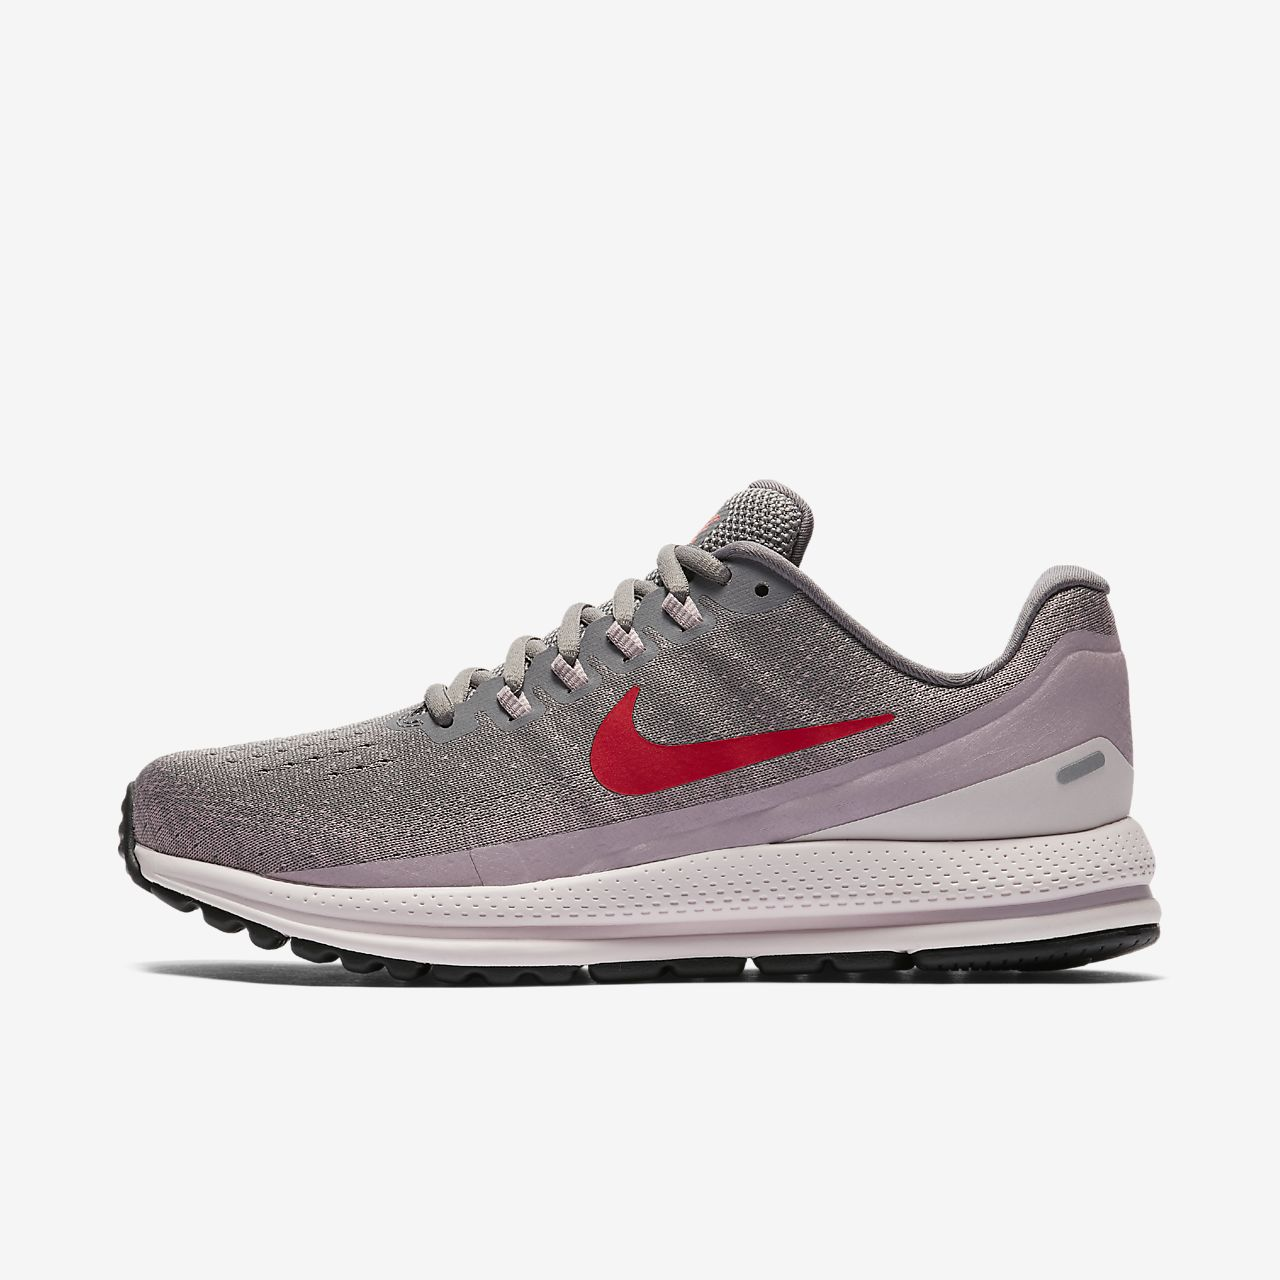 ... Chaussure de running Nike Air Zoom Vomero 13 pour Femme